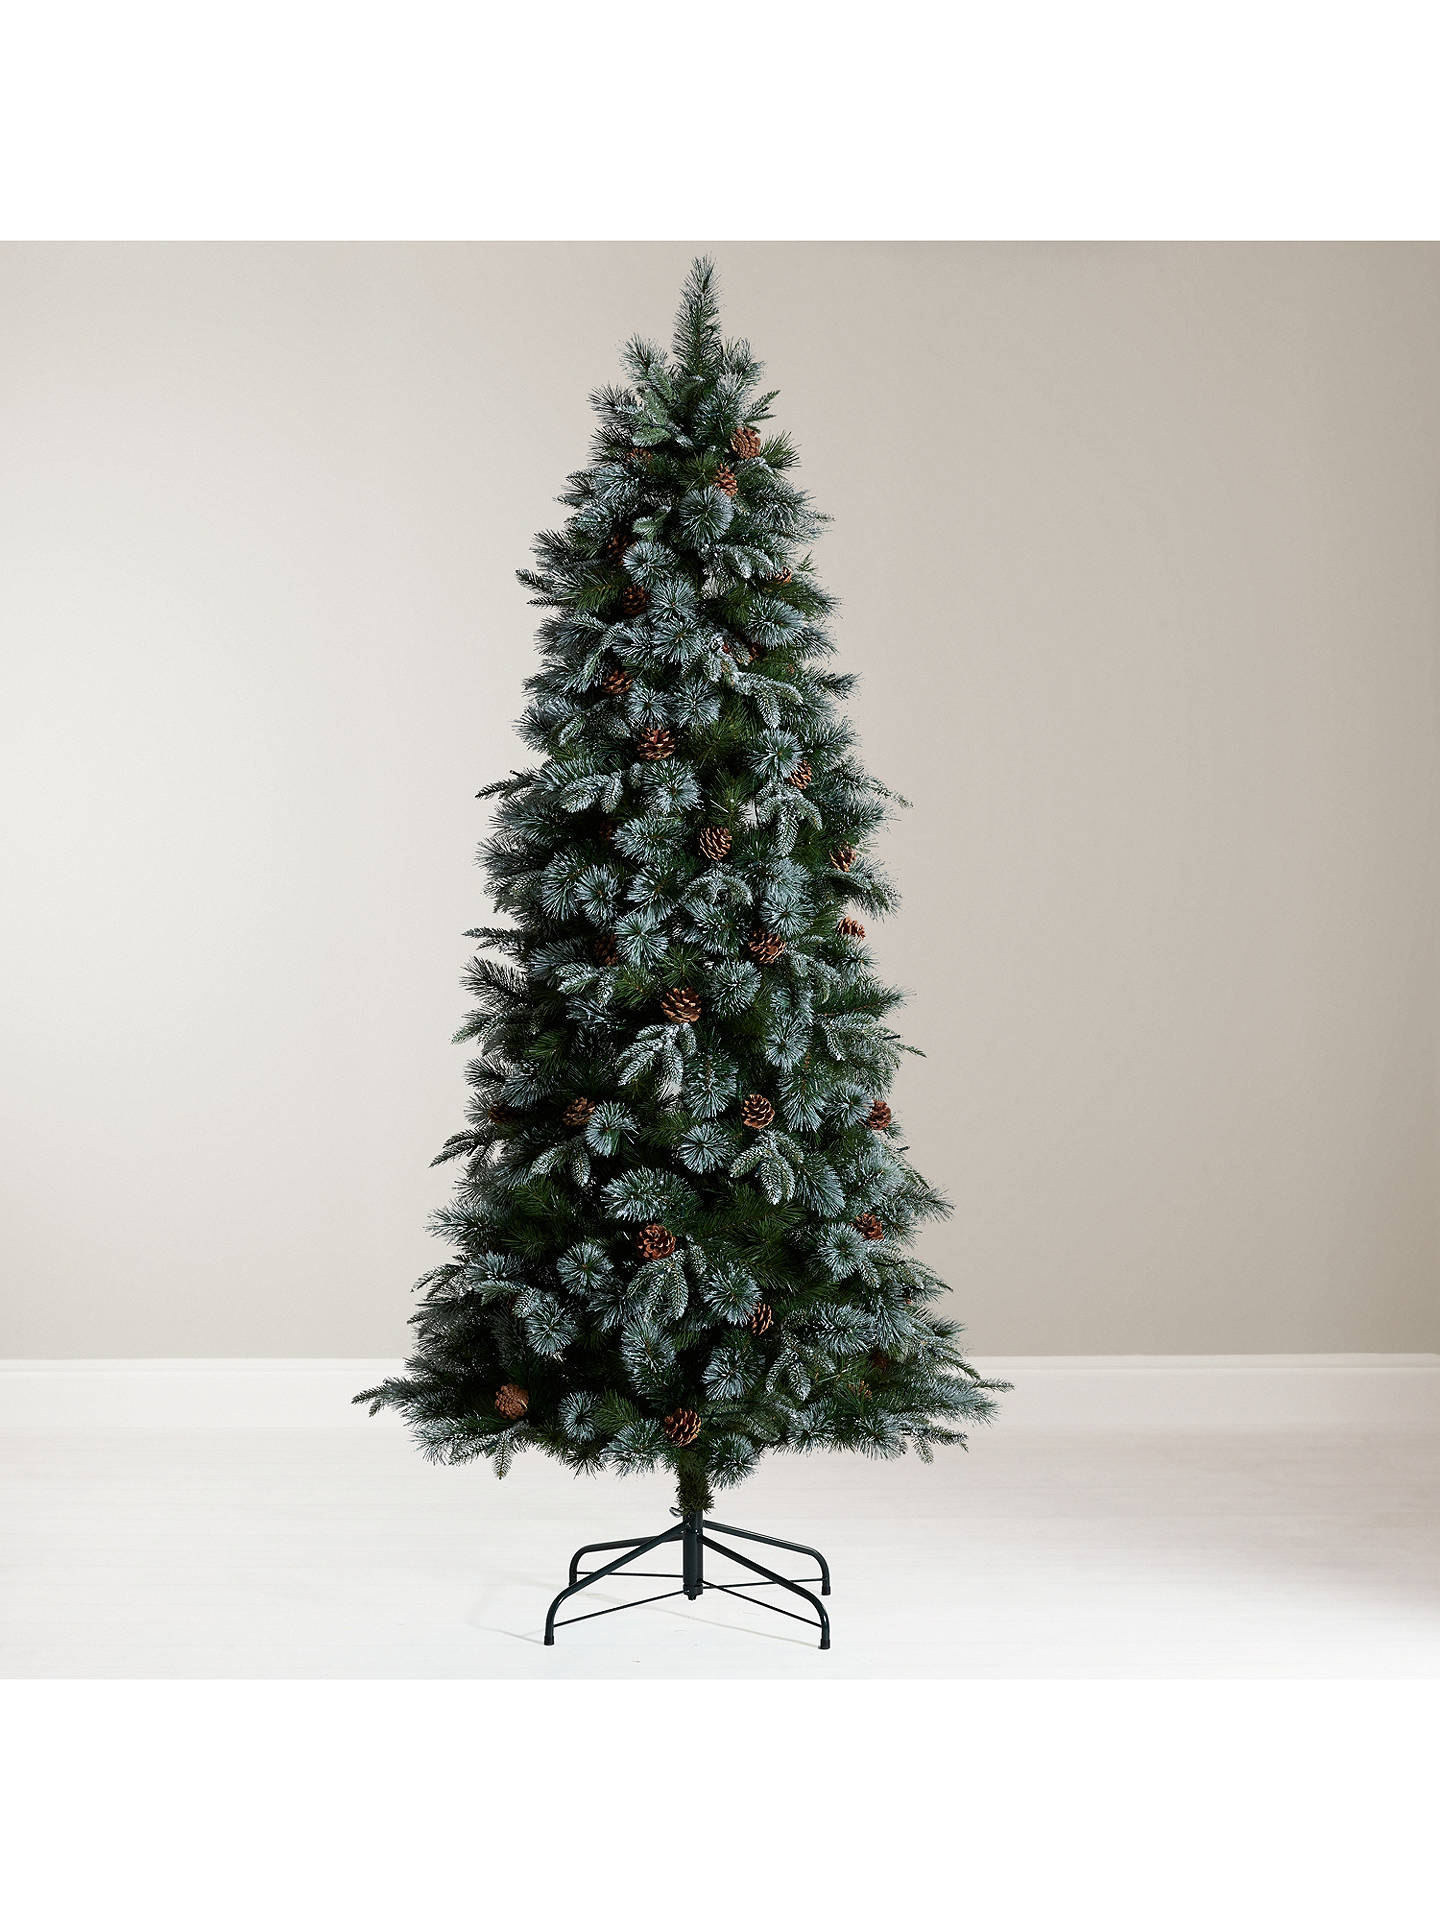 BuyJohn Lewis & Partners Foxtail Pine Pre-lit Christmas Tree, 6.5ft Online at johnlewis.com